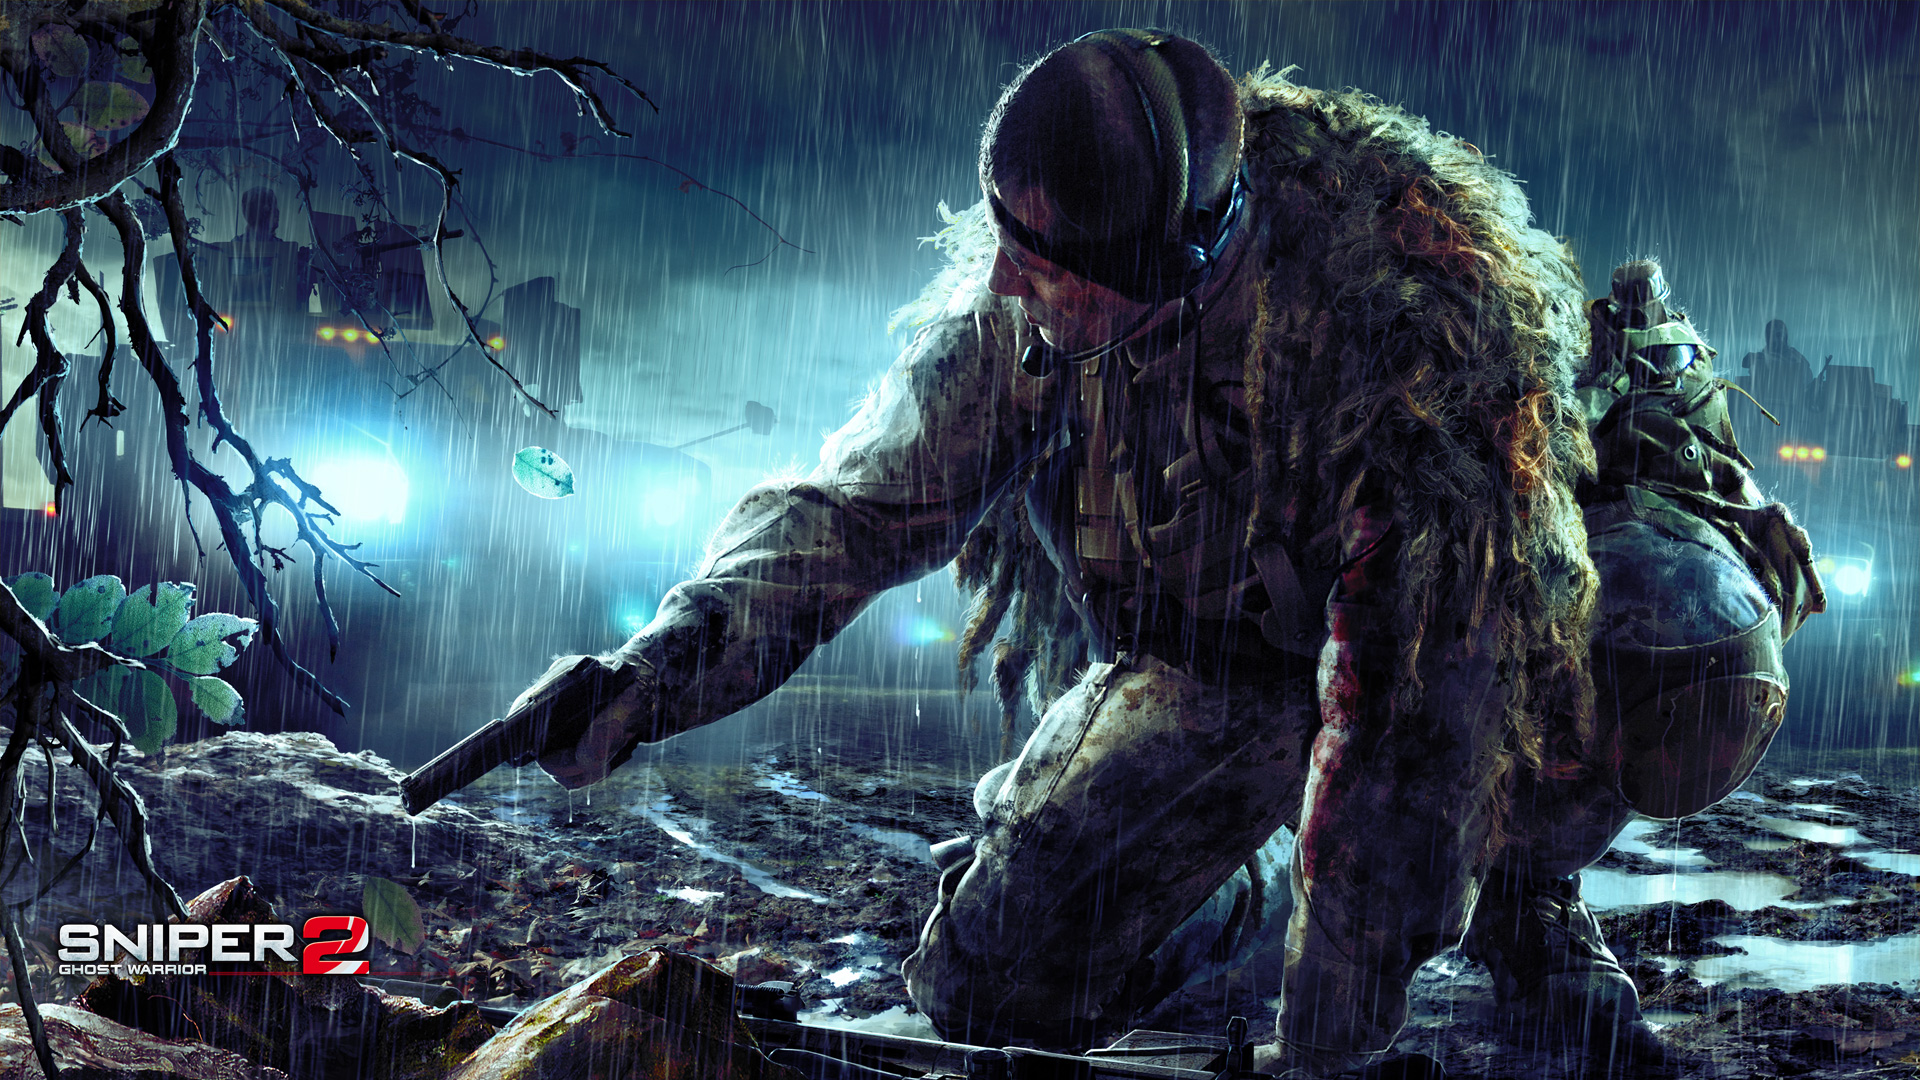 Sniper Ghost Warrior 2 wallpaper 1